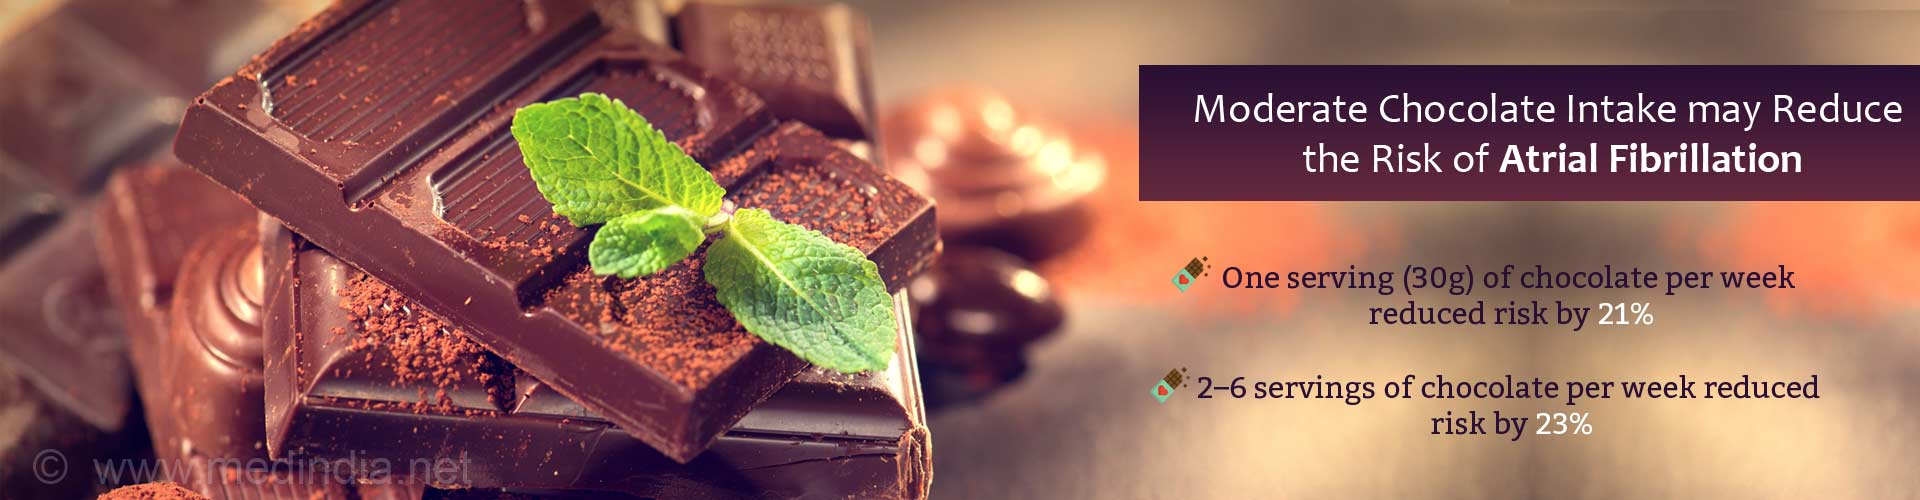 Moderate chocolate intake may reduce the risk of atrial fibrillation